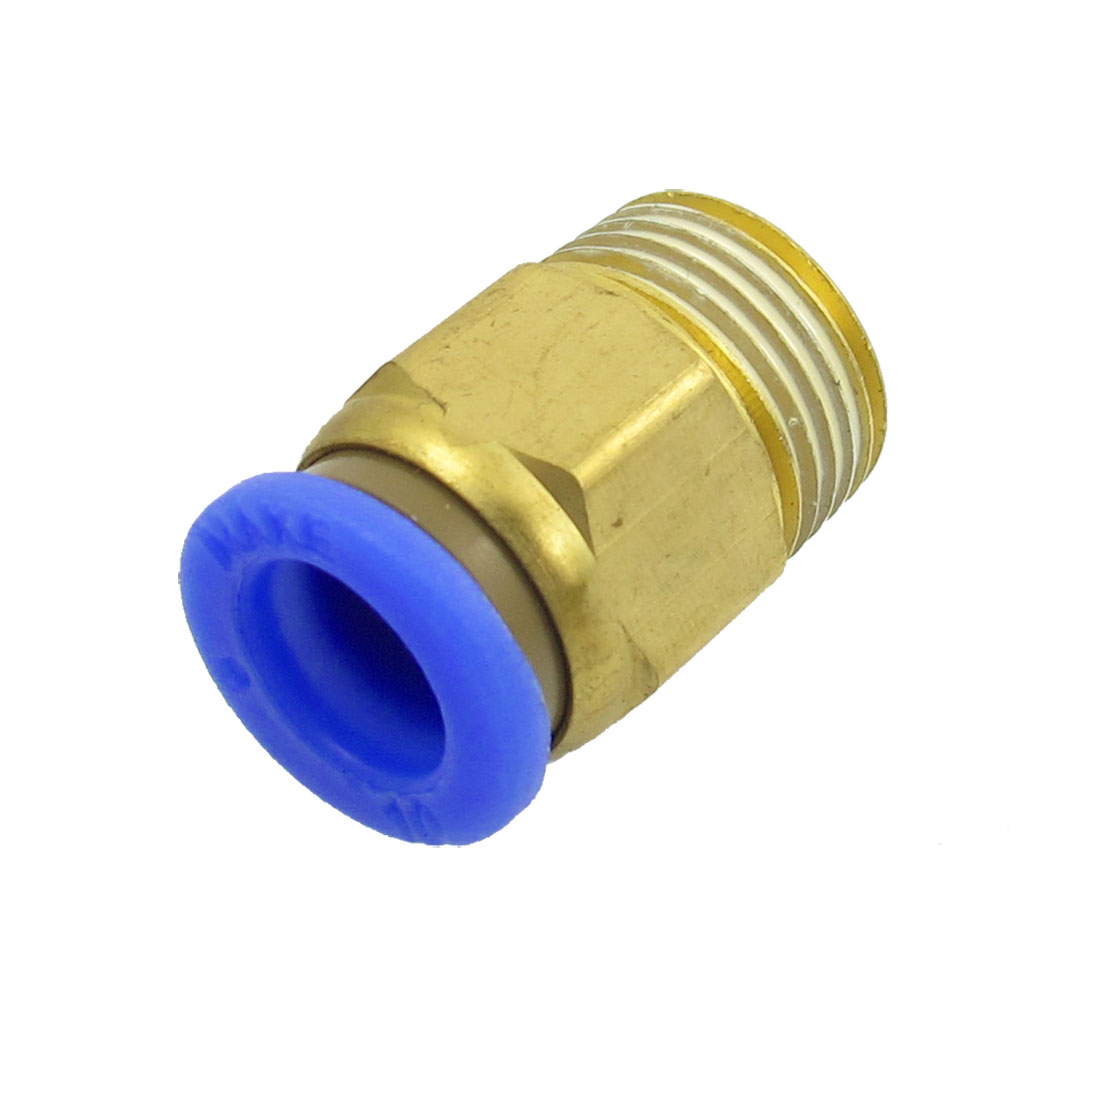 "1/8"" Thread One Touch Push In Pneumatic Quick Connector for 6mm Tubing"